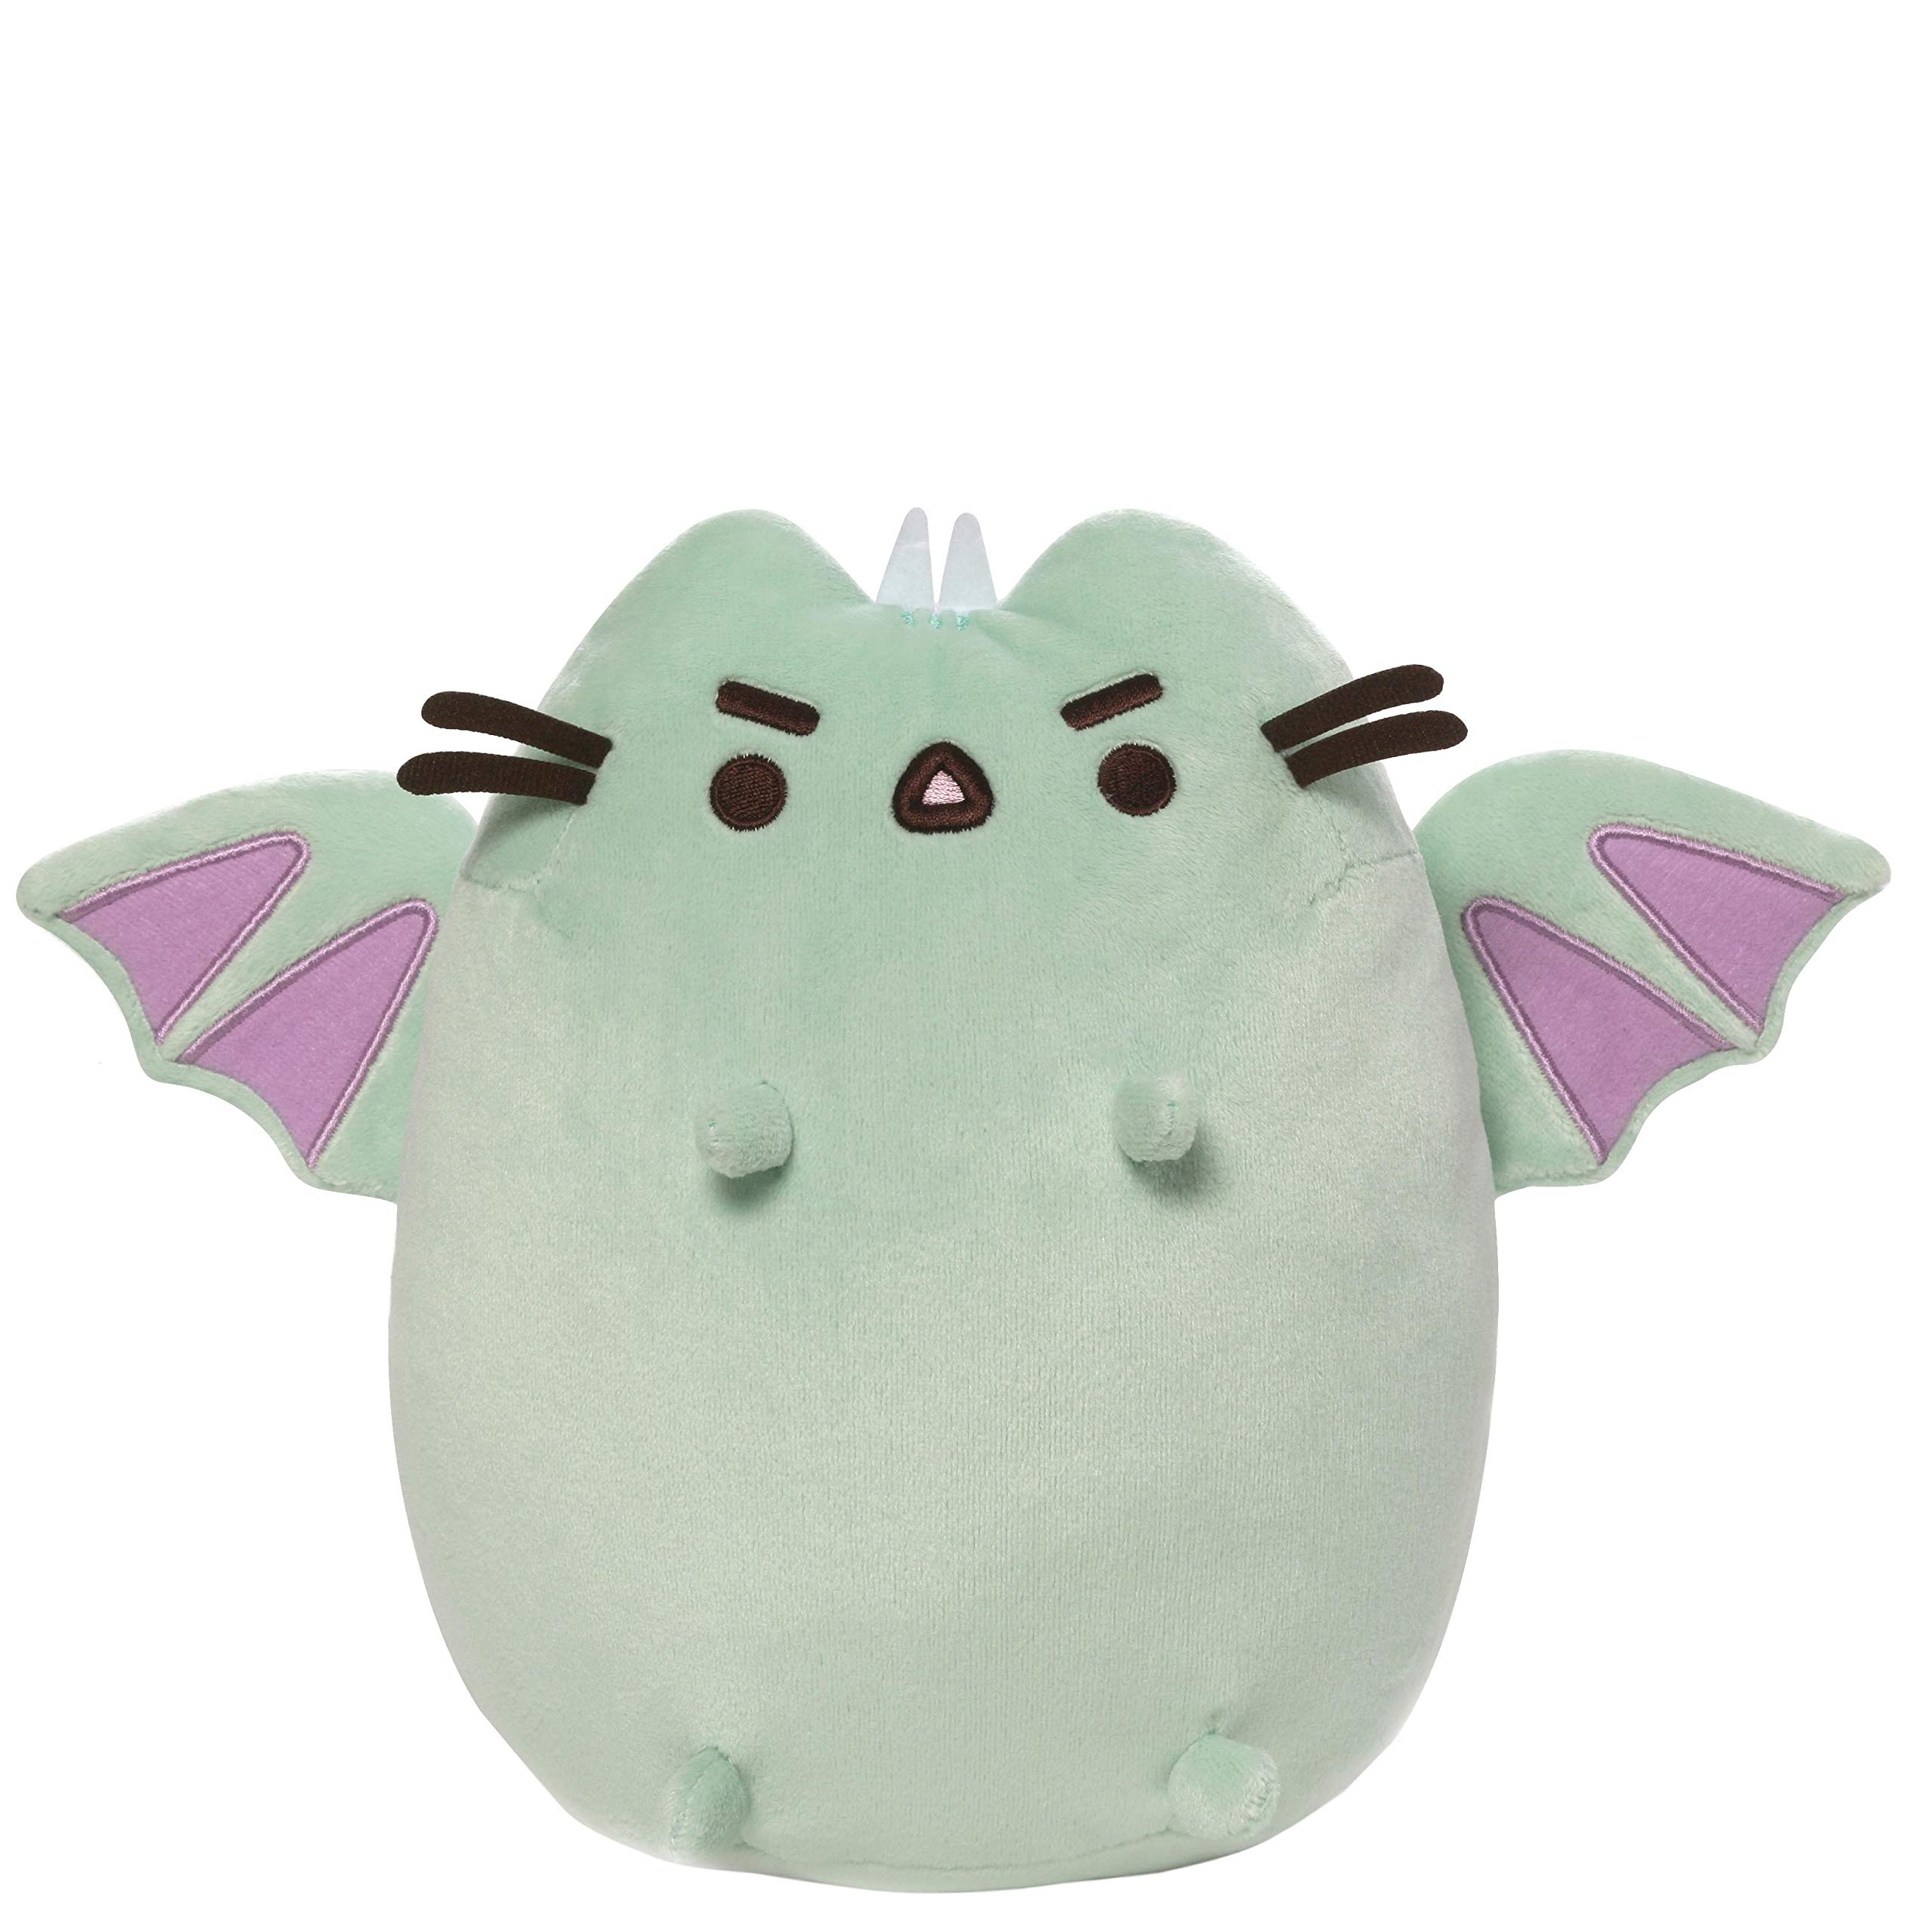 GUND Pusheen Dragonsheen Plush Stuffed Dragon, 9'', Multicolor by GUND